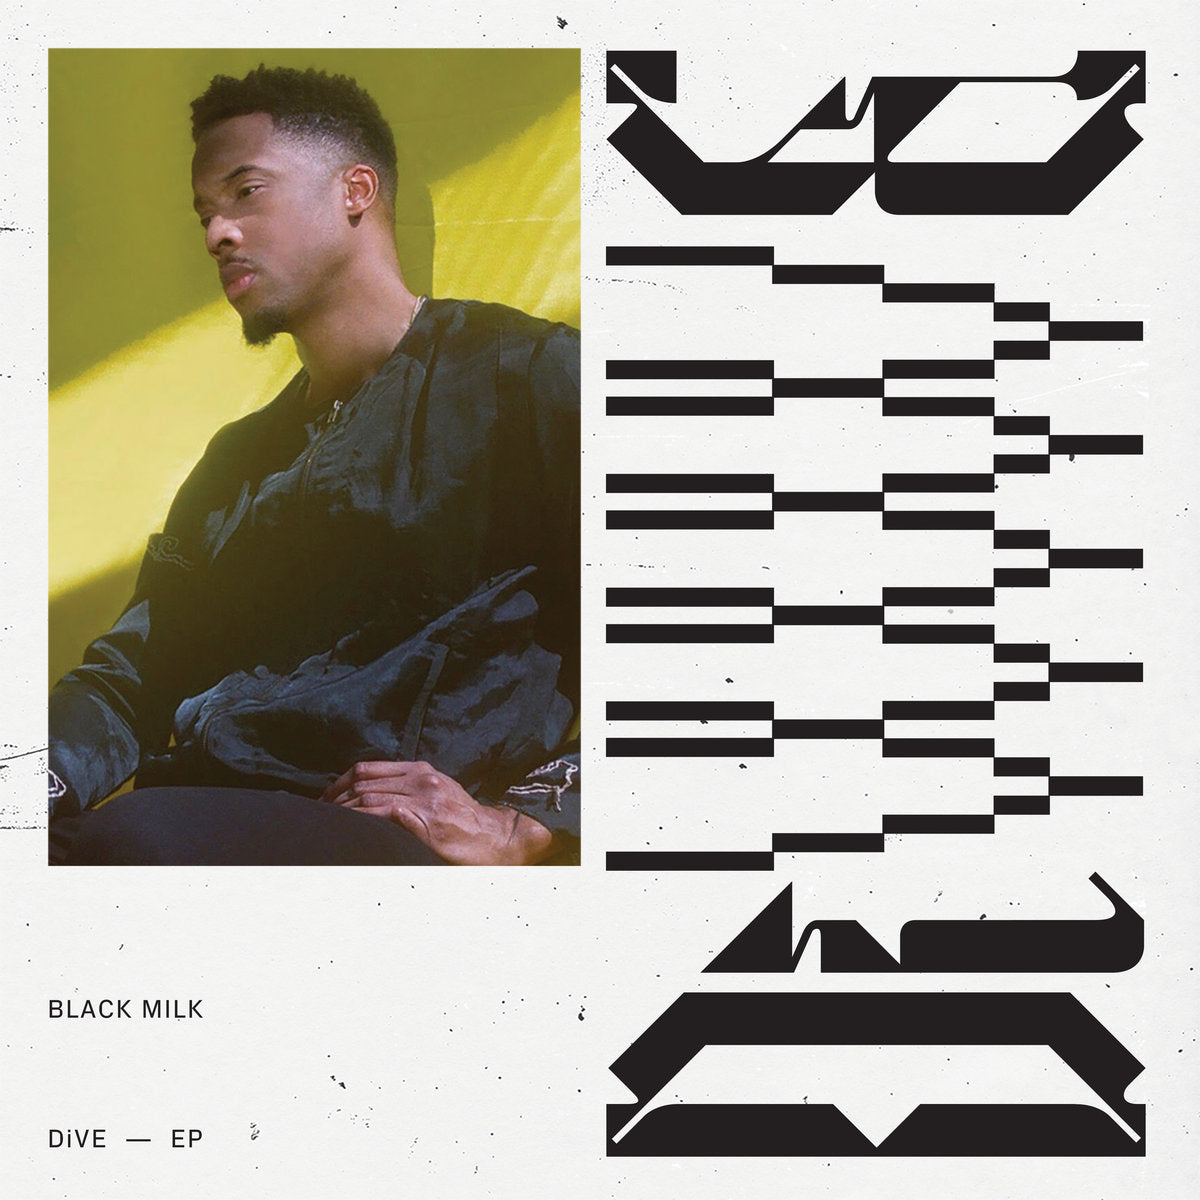 Black Milk - Dive